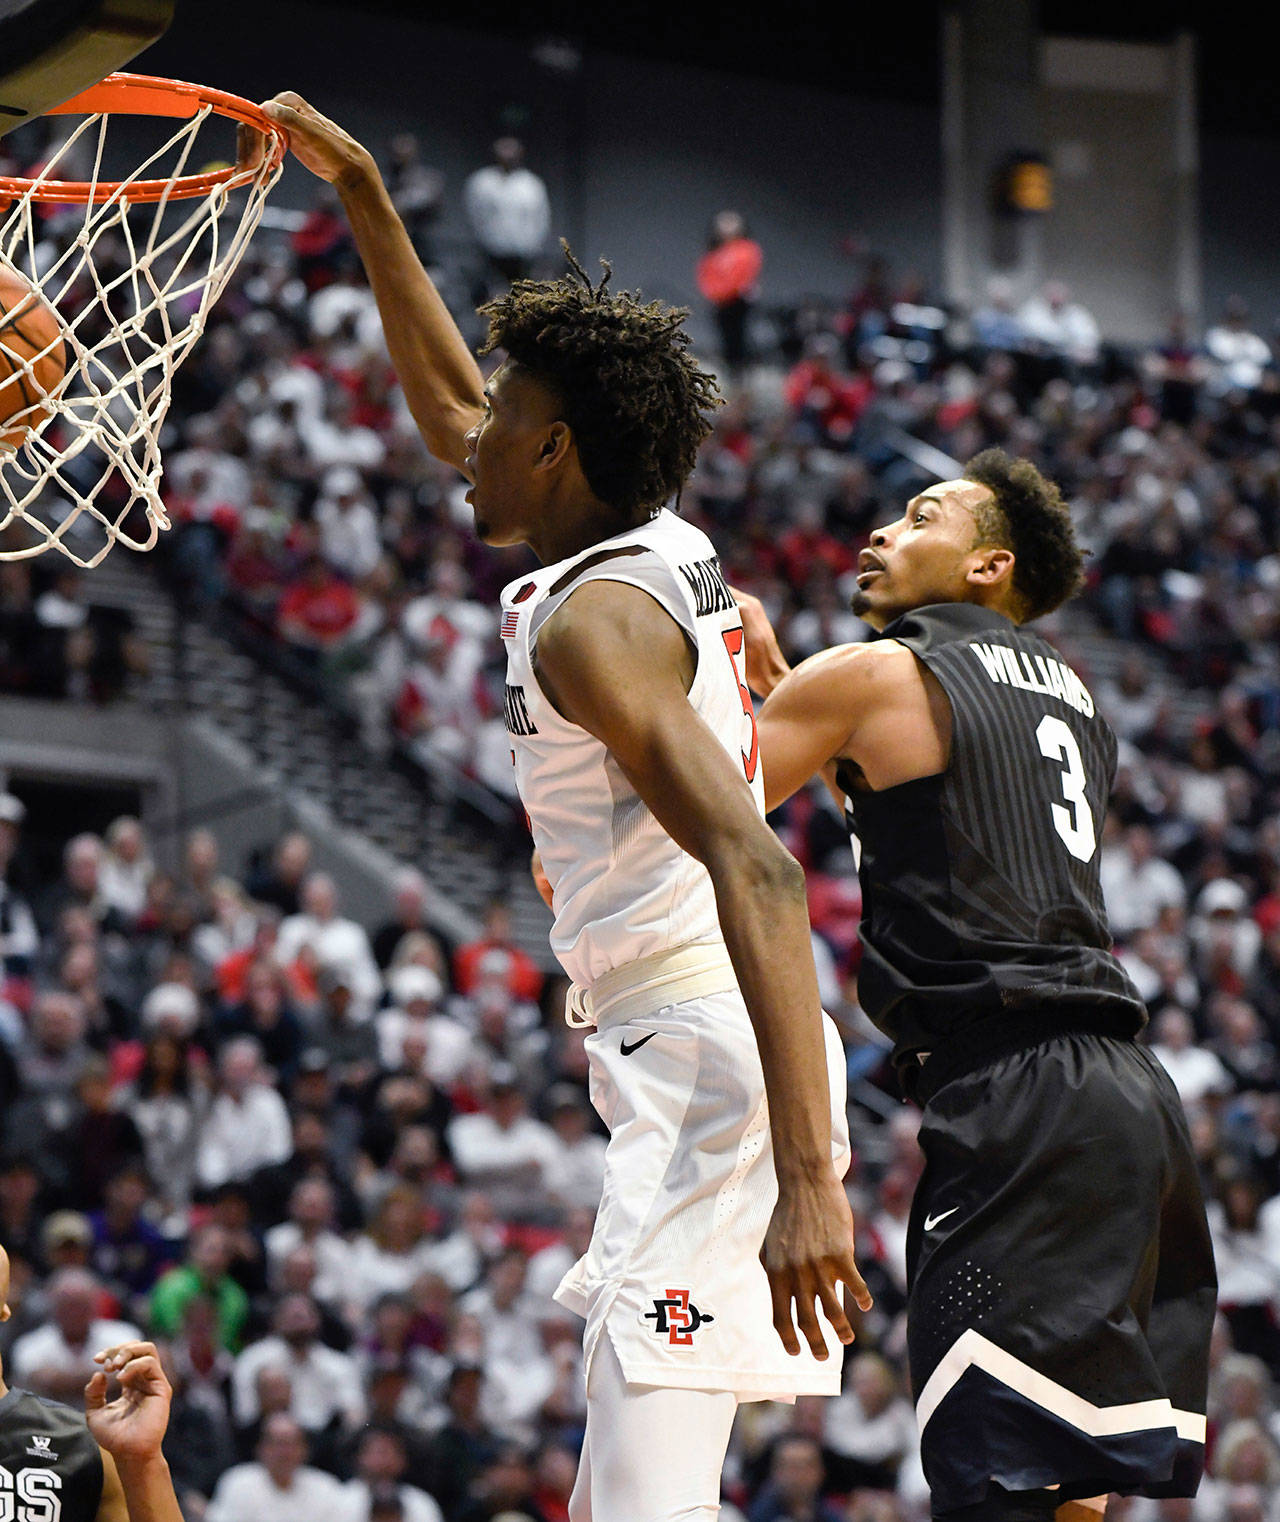 San Diego State forward Jalen McDaniels (5) tips in a rebound in front of Gonzaga forward Johnathan Williams (3) during the second half of a game Thursday in San Diego. (AP Photo/Denis Poroy)